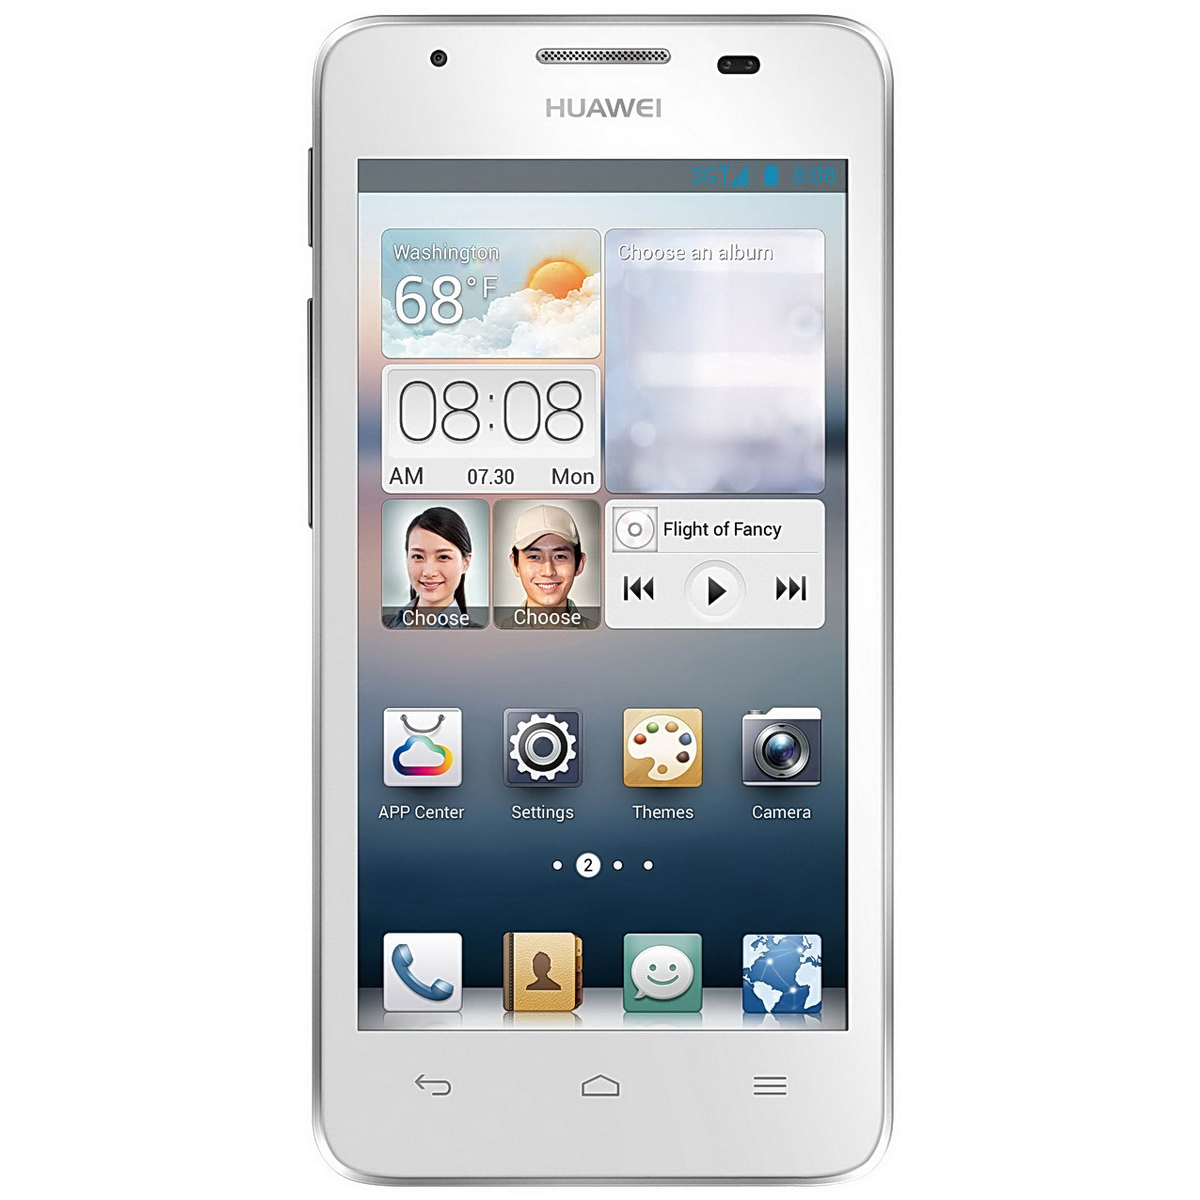 huawei ascend g510 firmware 0200 needrom